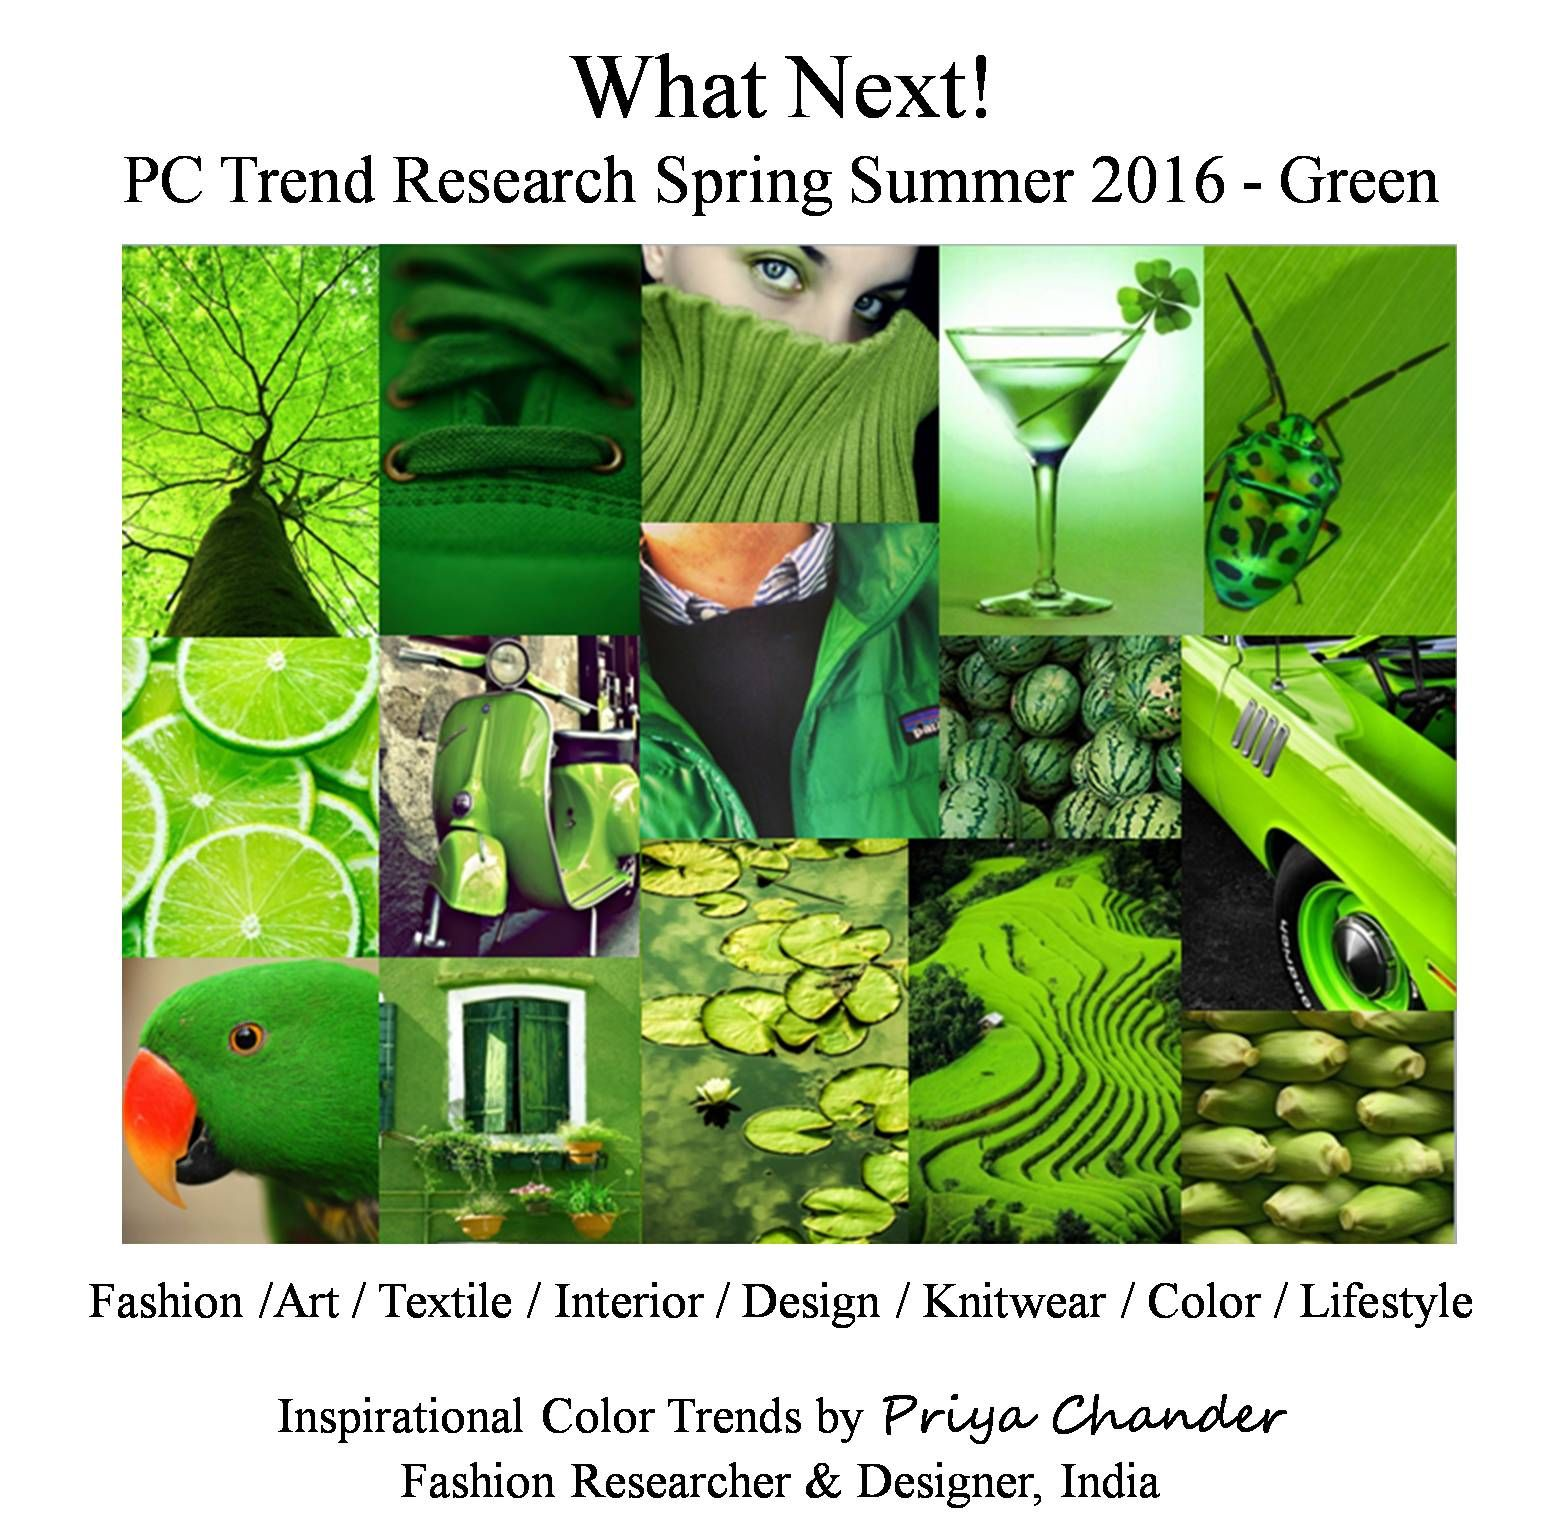 #fashion #art #design #SS16 #pctrendresearch #fashionforecast #green #nature #textiles #apparel #interiordesign #interiors #decor #homefurnishing #knitwear #knitting #lifestyle